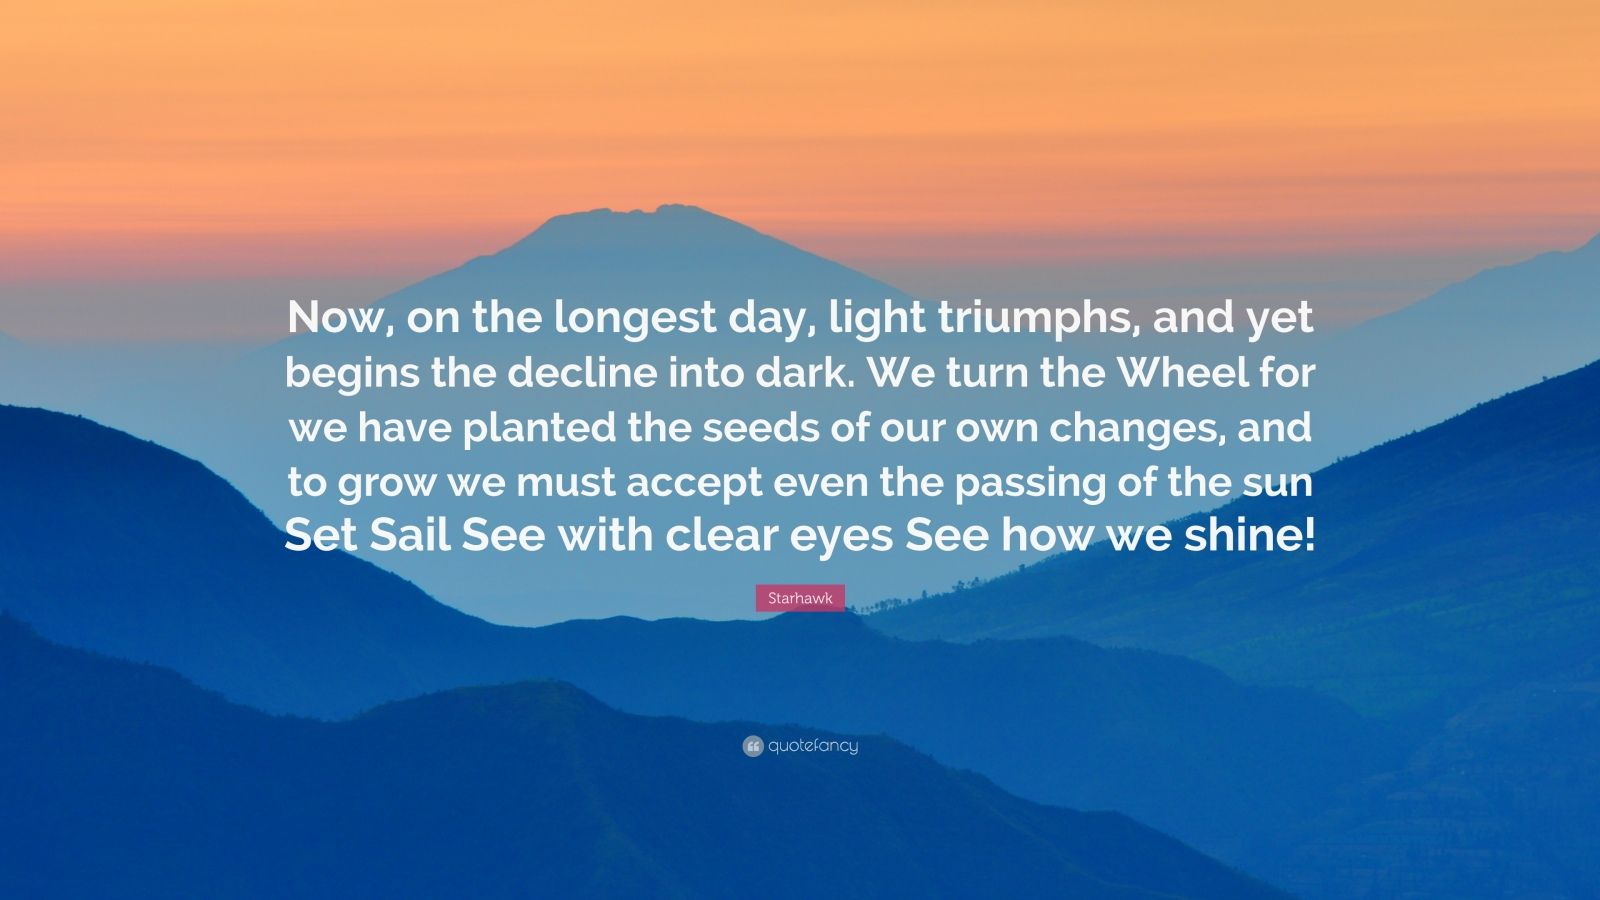 """Starhawk Quote: """"Now, on the longest day, light triumphs, and yet begins the decline into dark. We turn the Wheel for we have planted the seeds of our own changes, and to grow we must accept even the passing of the sun Set Sail See with clear eyes See how we shine!"""""""